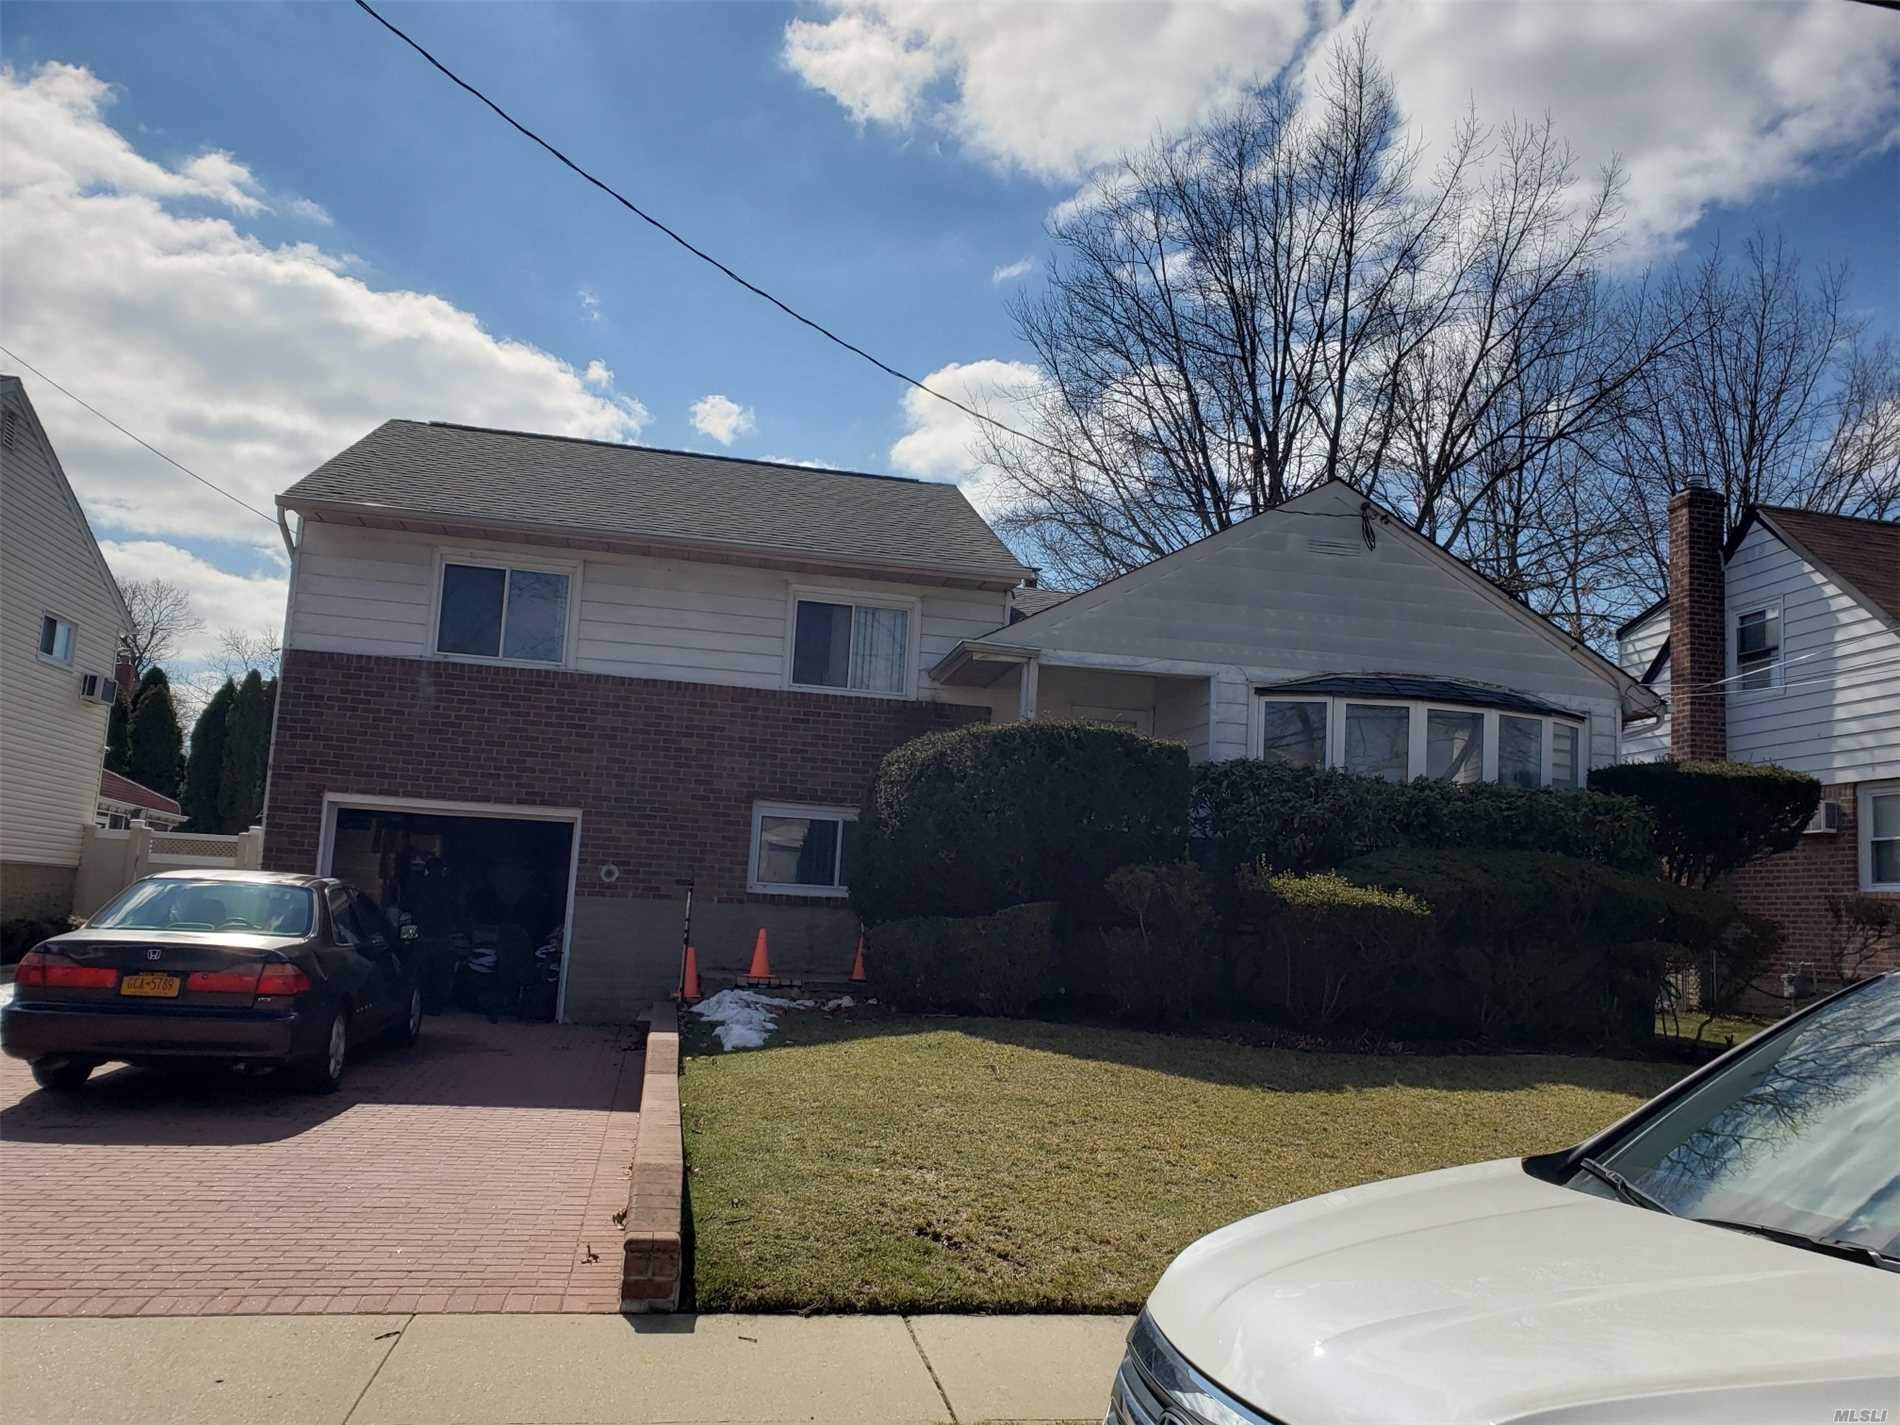 Sunny split level in a convenient location close to Southern St and Belt Pkwy. Plenty of space to entertain with large living room and separate family room. Plenty of storage throughout with finished basement. Quiet street. Large outdoor deck.